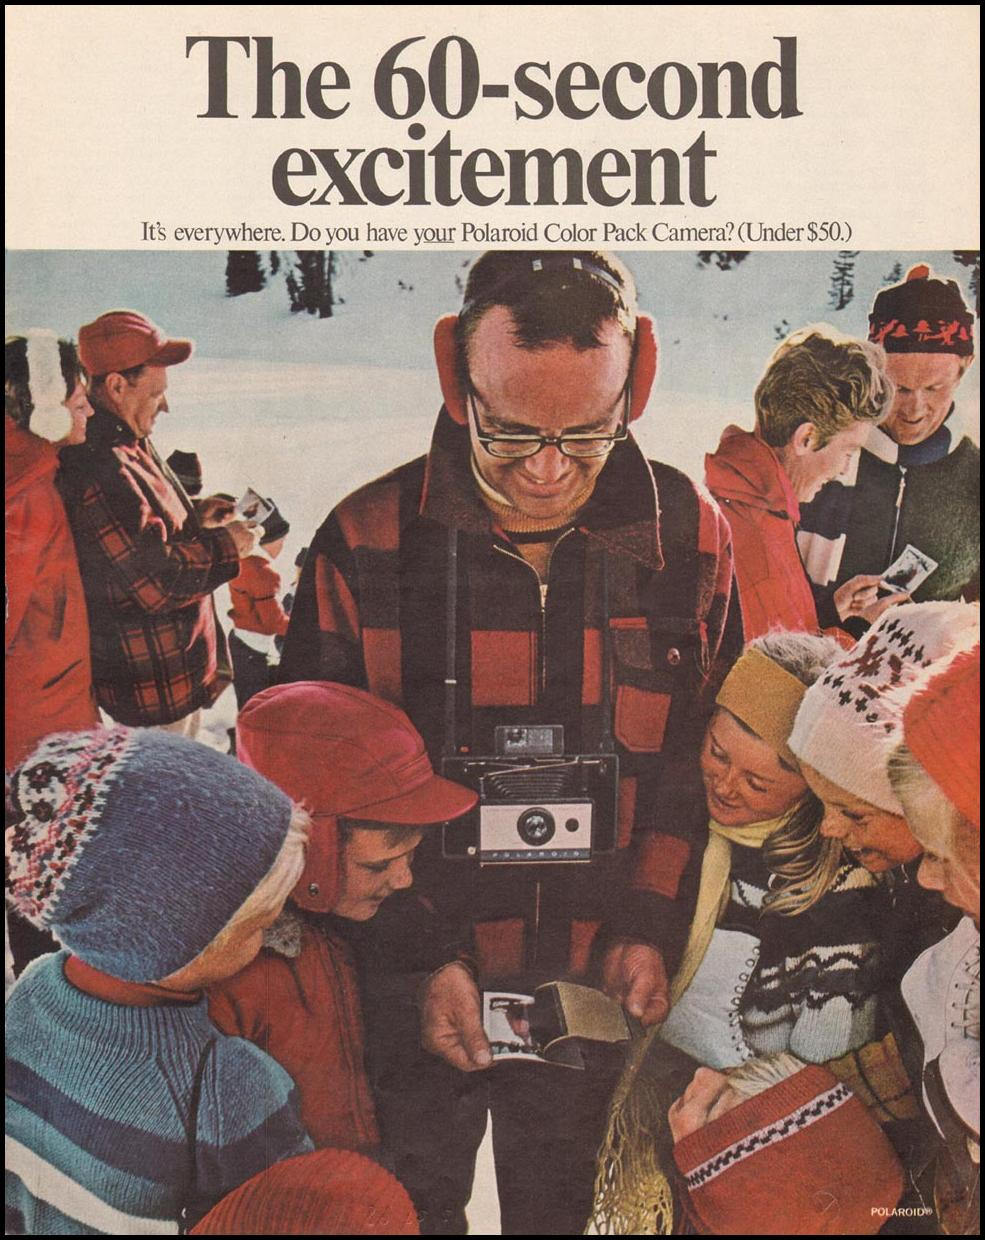 POLAROID COLOR PACK CAMERA SATURDAY EVENING POST 12/28/1968 p. 13